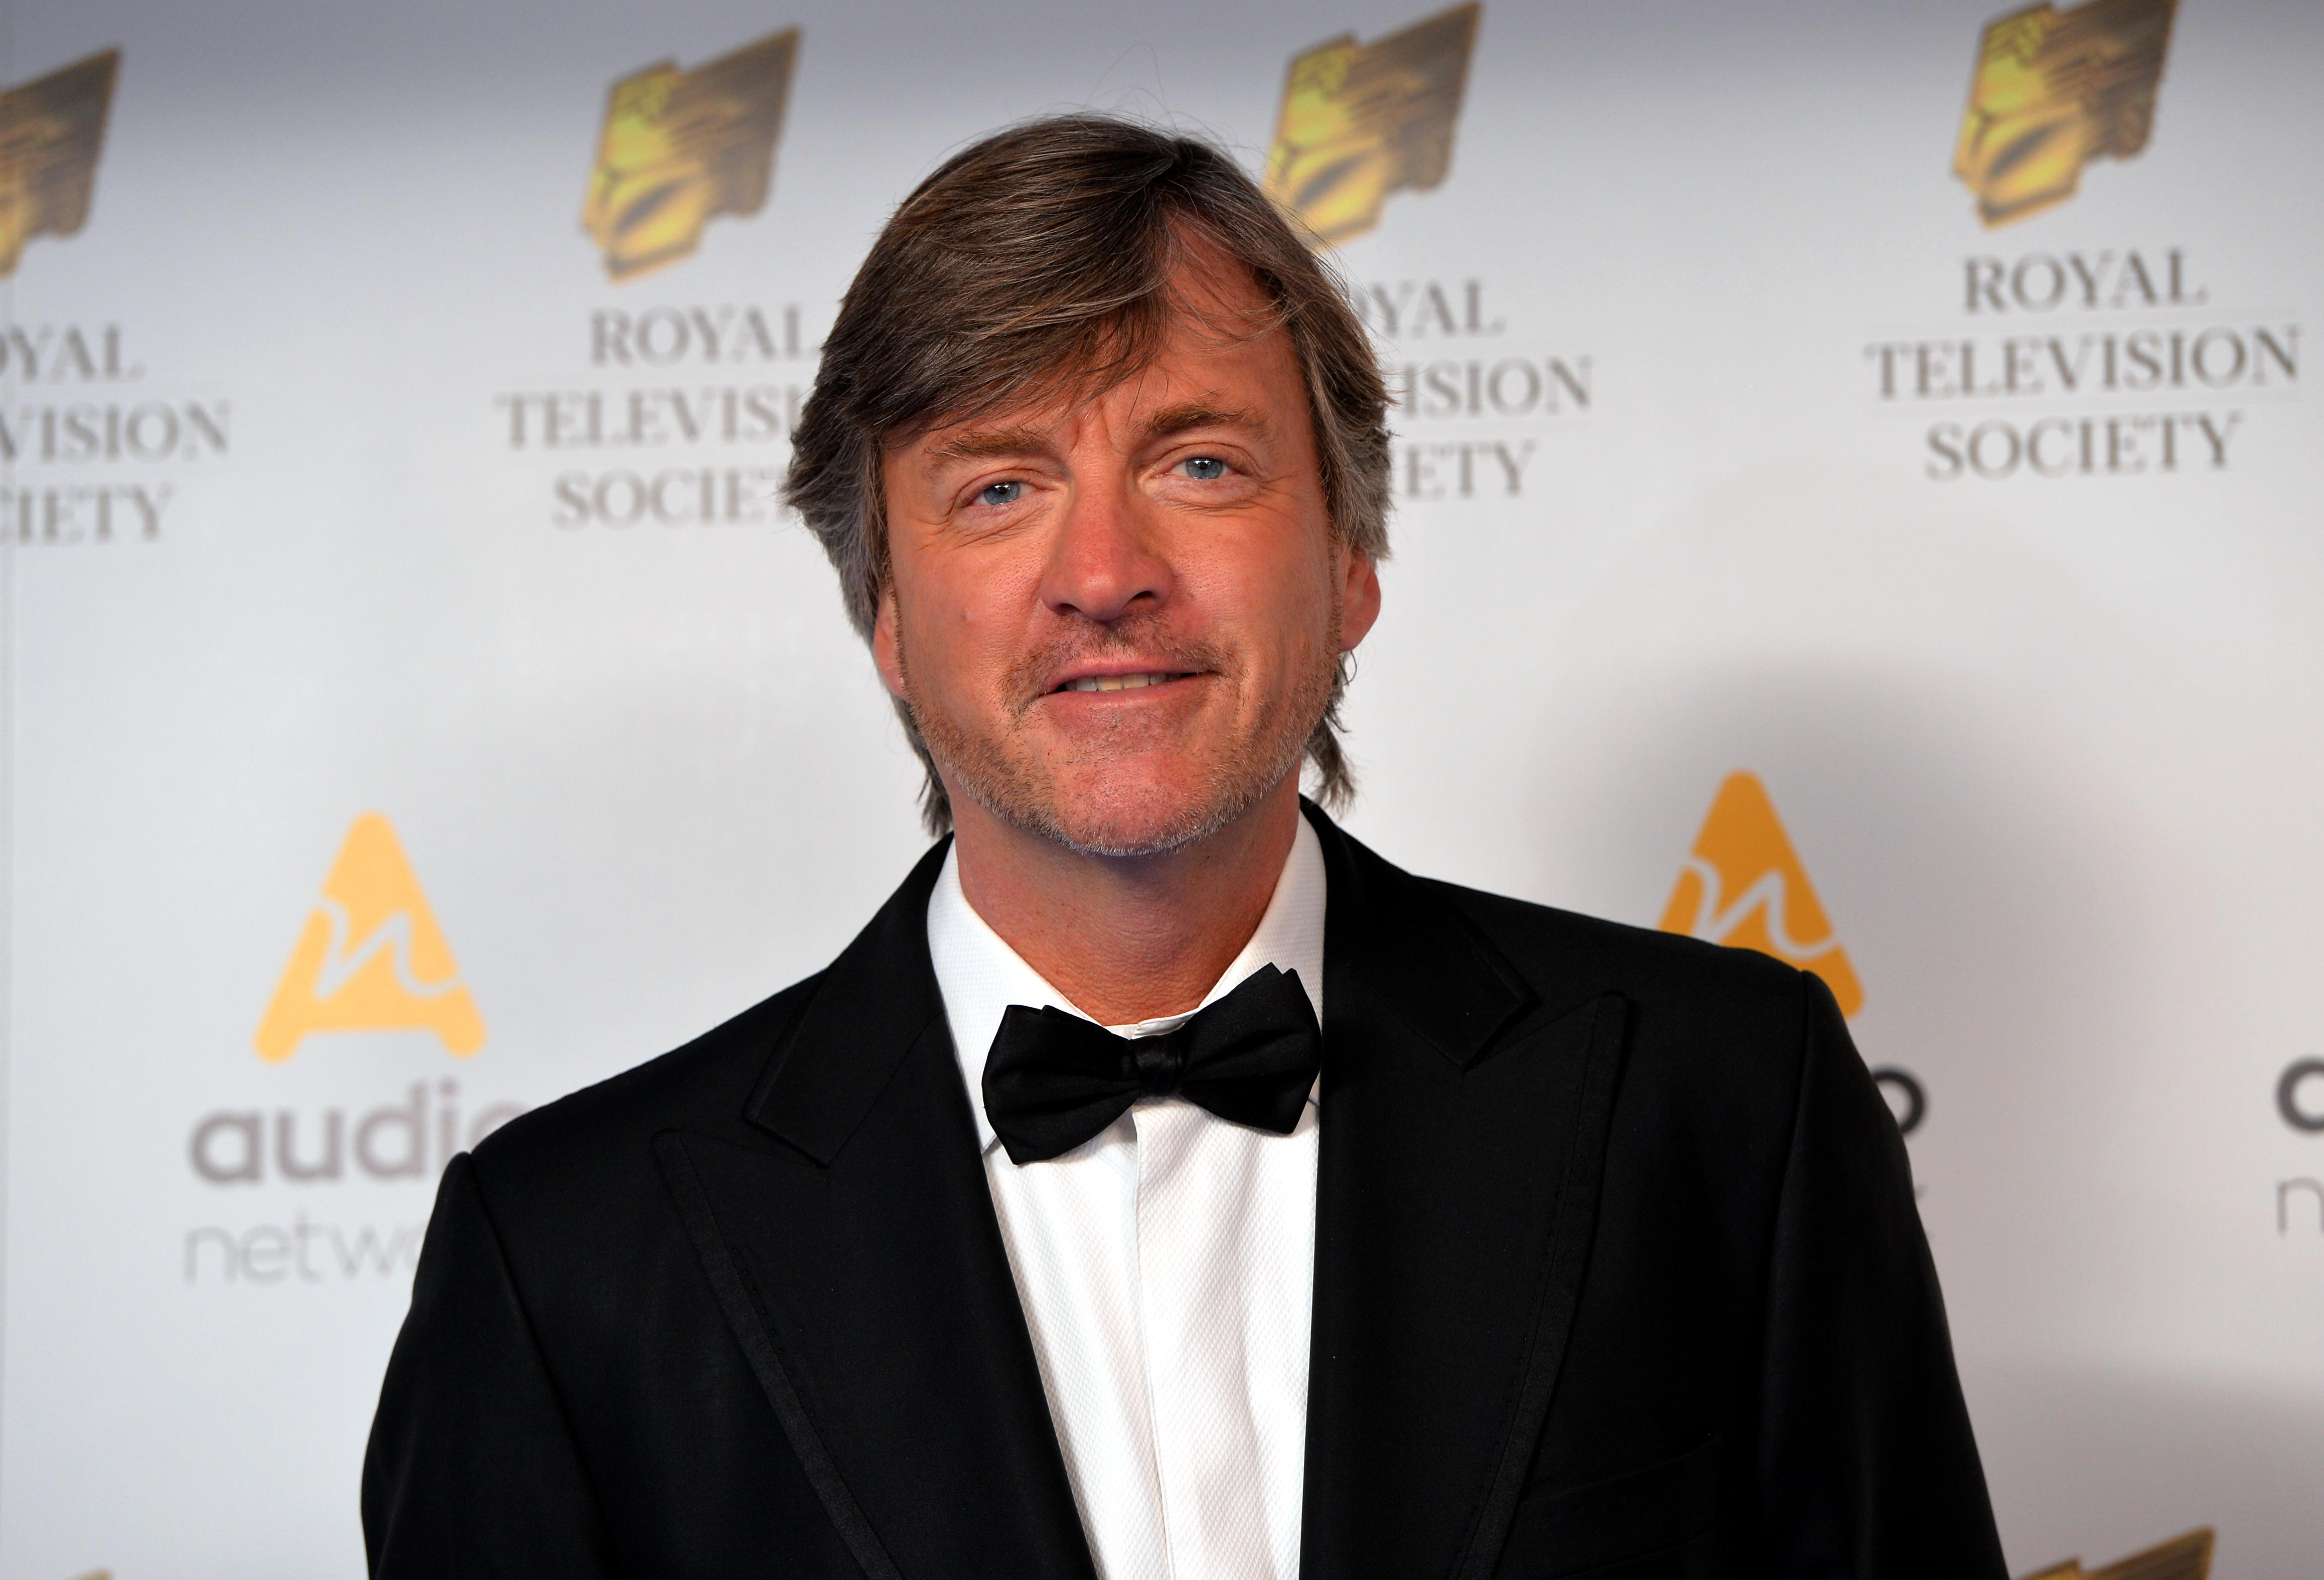 Richard Madeley attending the 2016 Royal Television Society Programme Awards, Grosvenor House Hotel, Park Lane, London. PRESS ASSOCIATION Photo. Picture date: Tuesday March 22, 2016. See PA story SHOWBIZ Awards. Photo credit should read: Dominic Lipinski/PA Wire